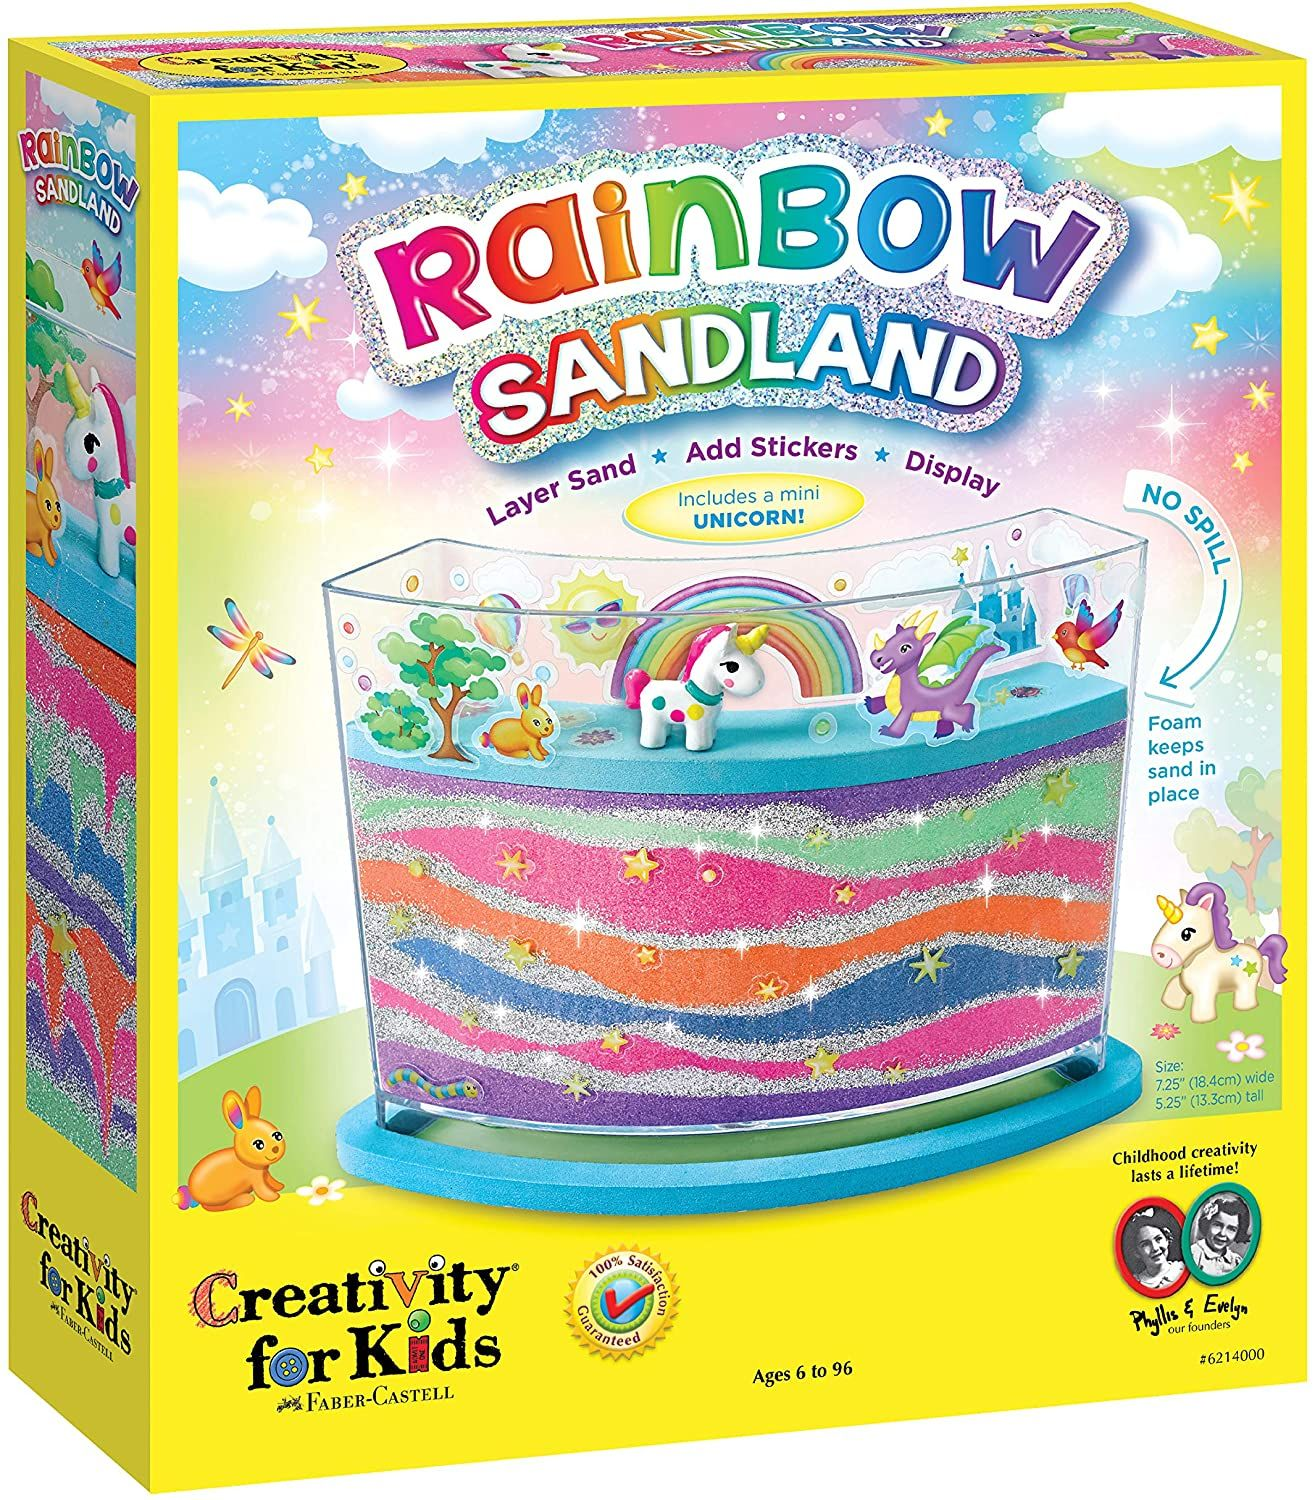 gifts for 7 year old girls-10.jpg